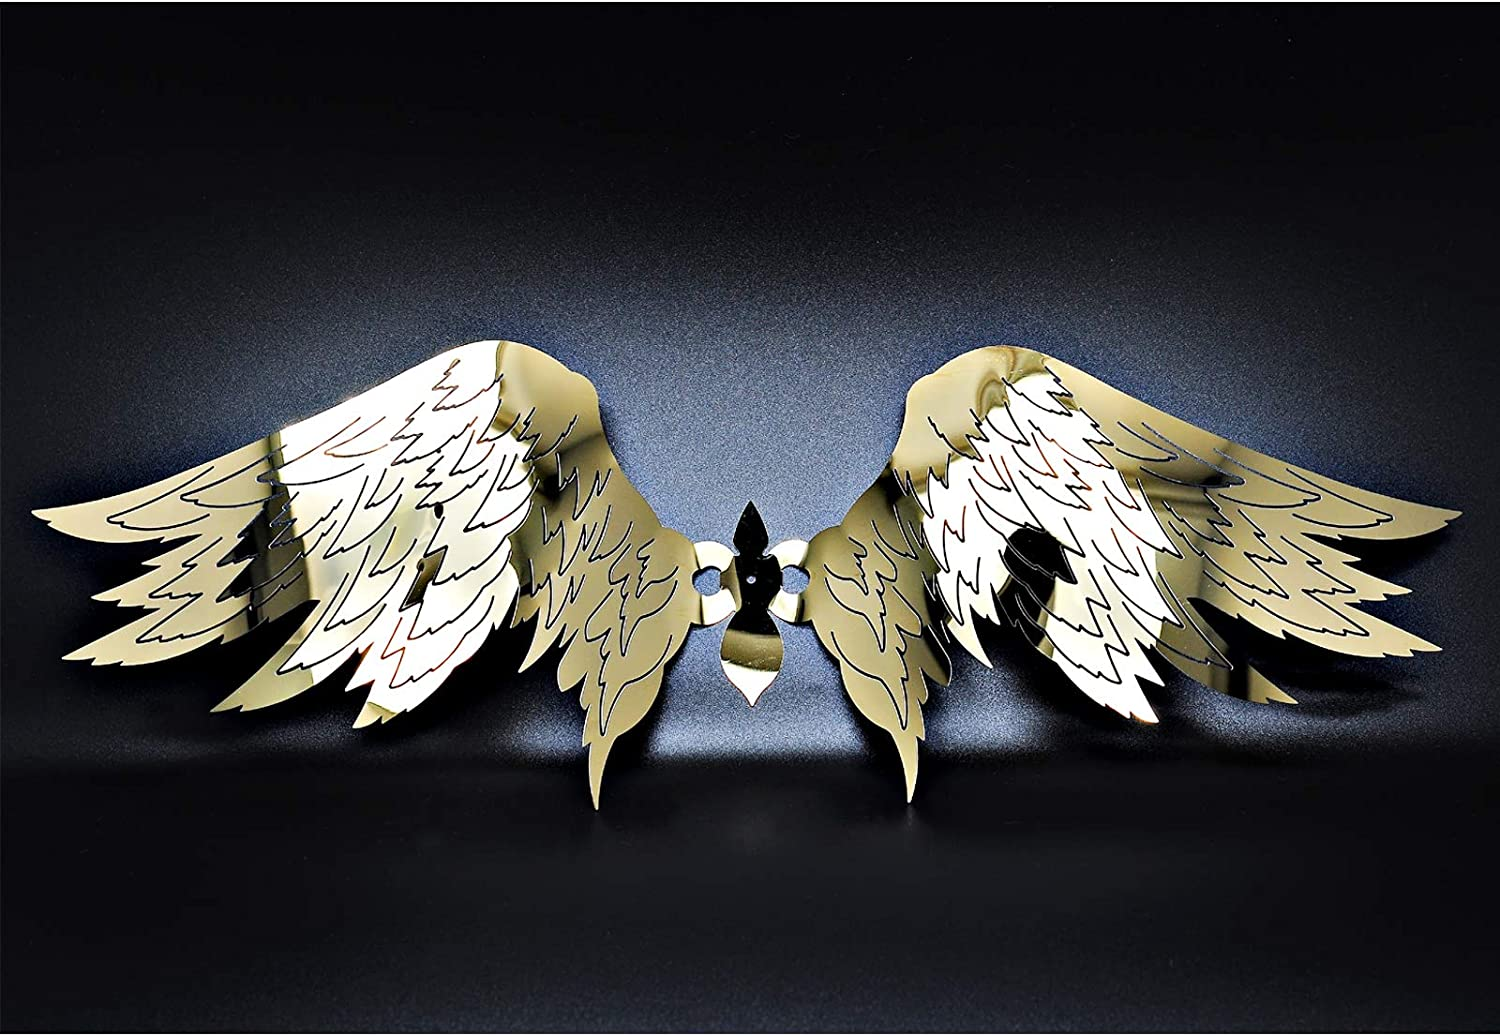 Magwen Metal Mirror Angel Wings Stainless Steel Home Decoration Sculpture, Used for Wall, Closet, Bookcase Decoration Statue (Golden)